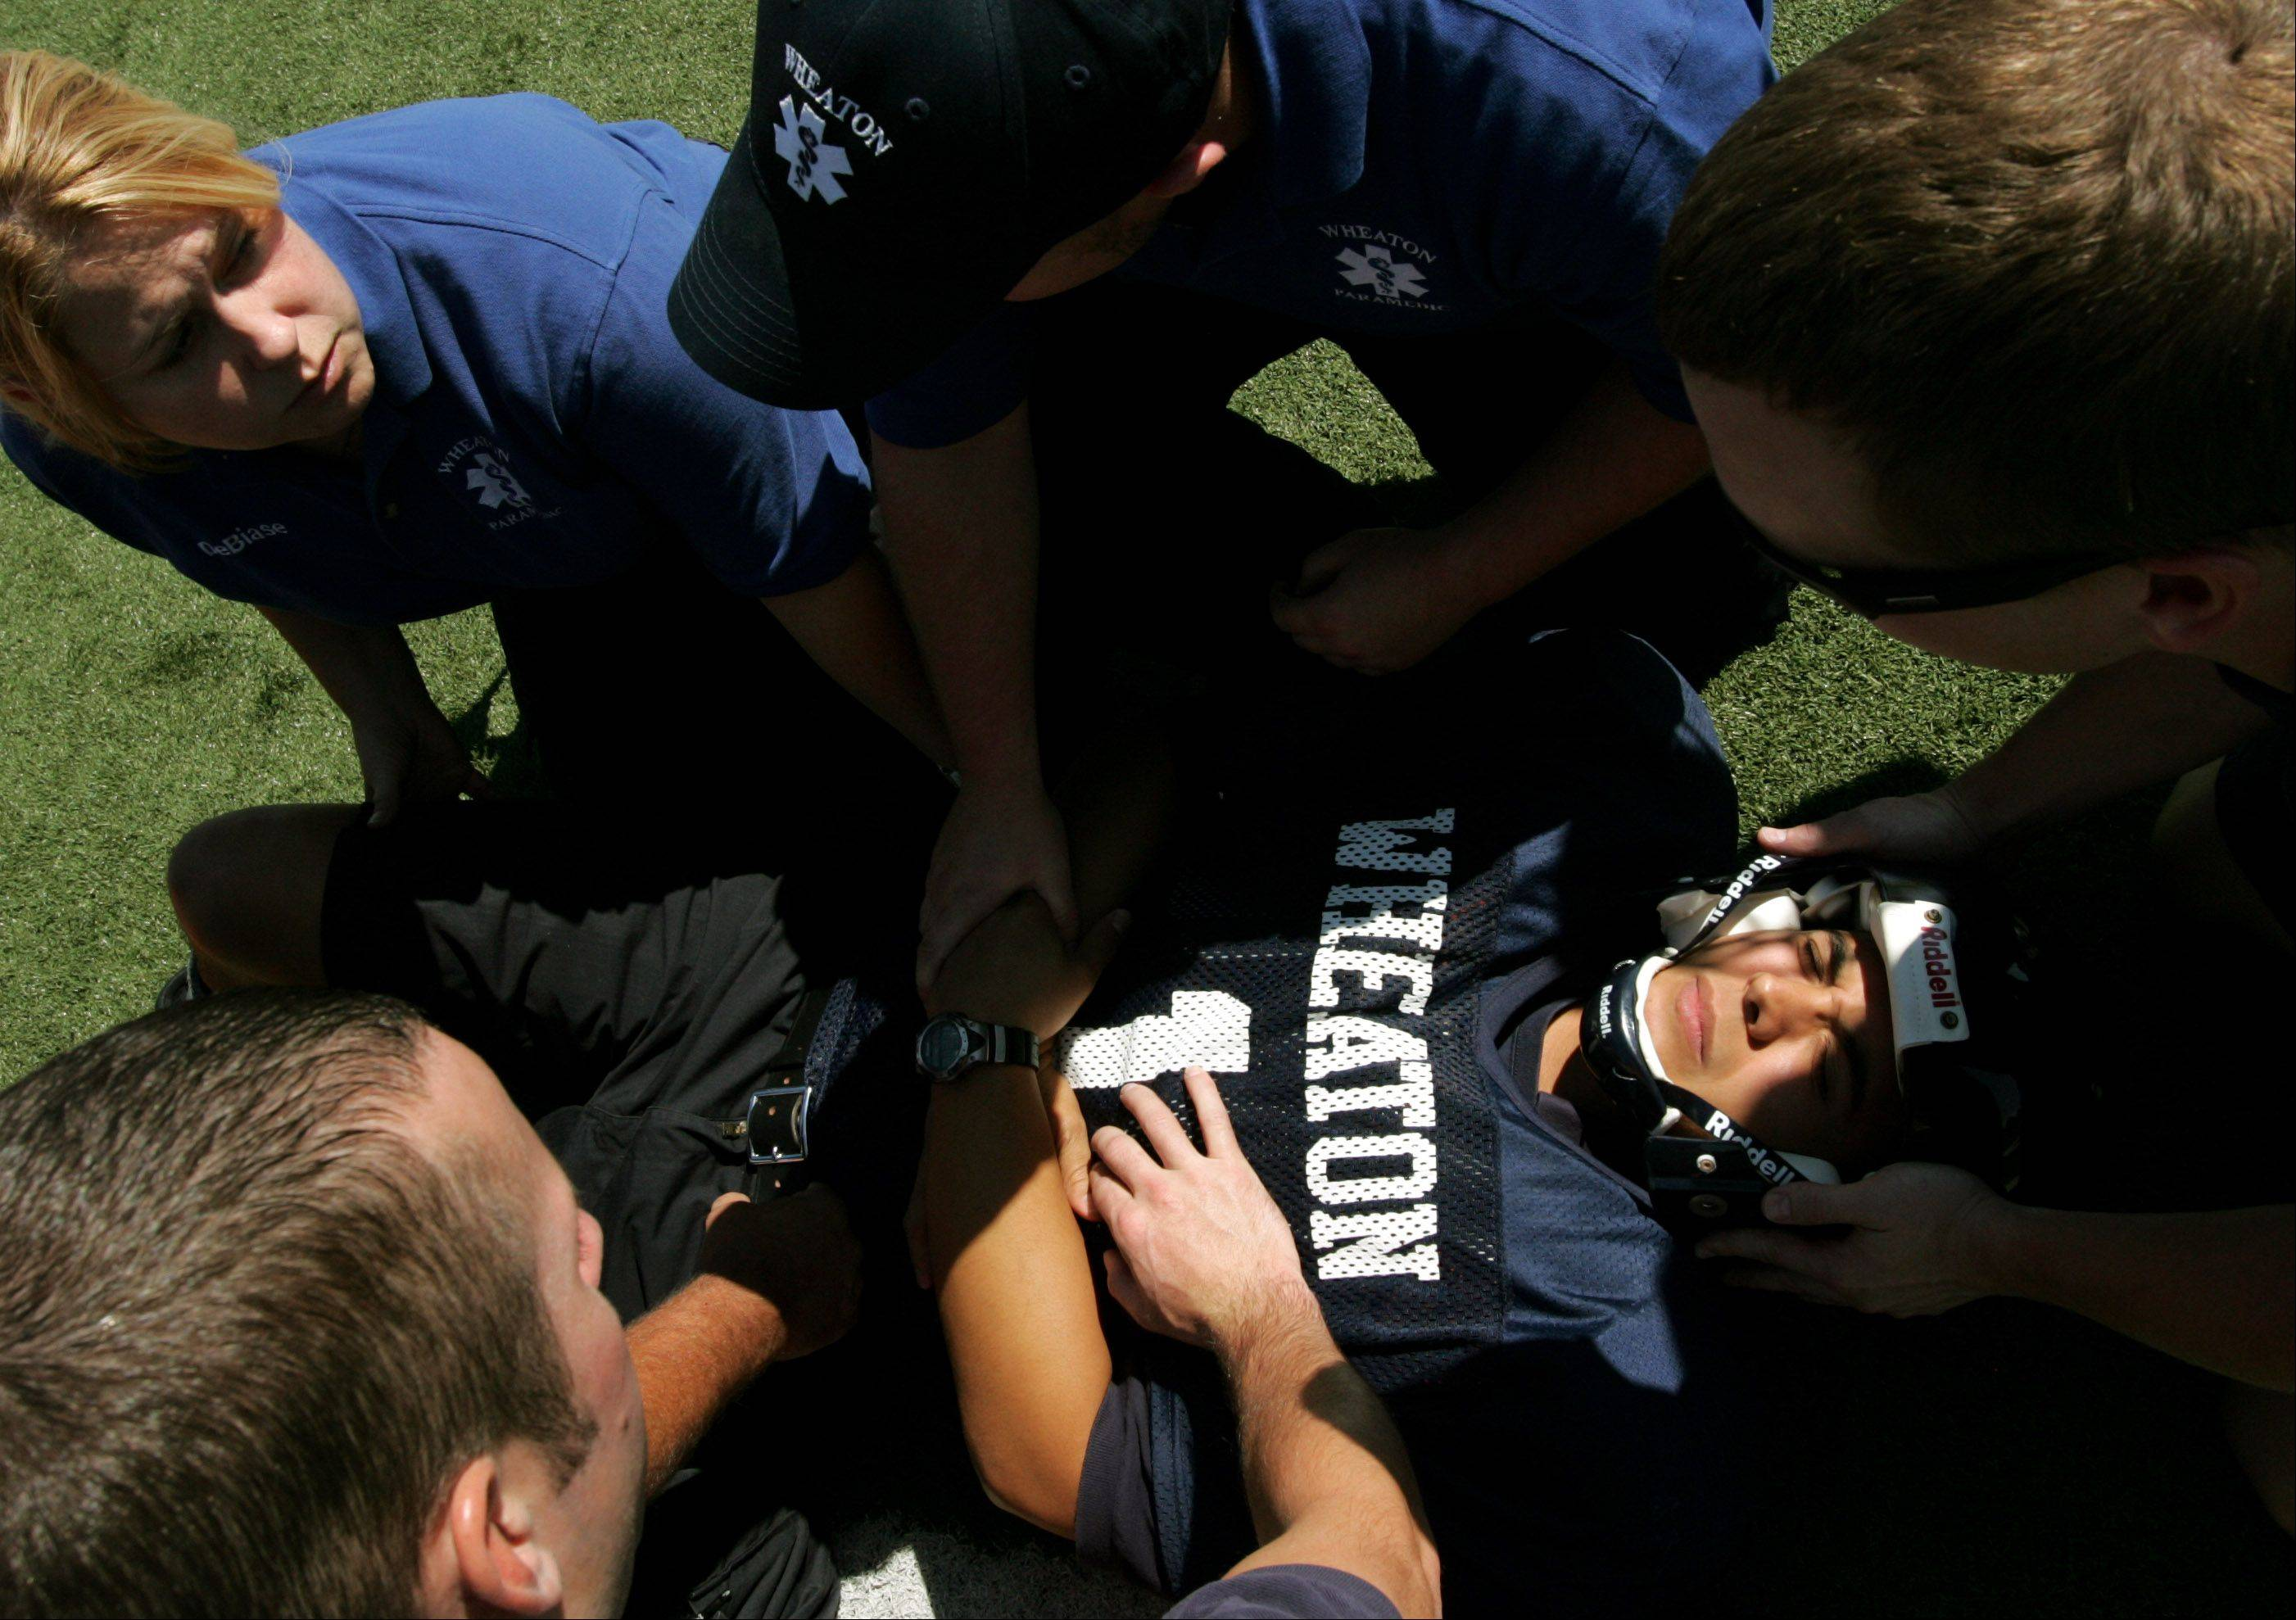 Wheaton firefighter Willie Cox poses as an injured football player during a training exercise on spinal injuries at Wheaton College. Cox said the exercise gave him a patient's perspective.